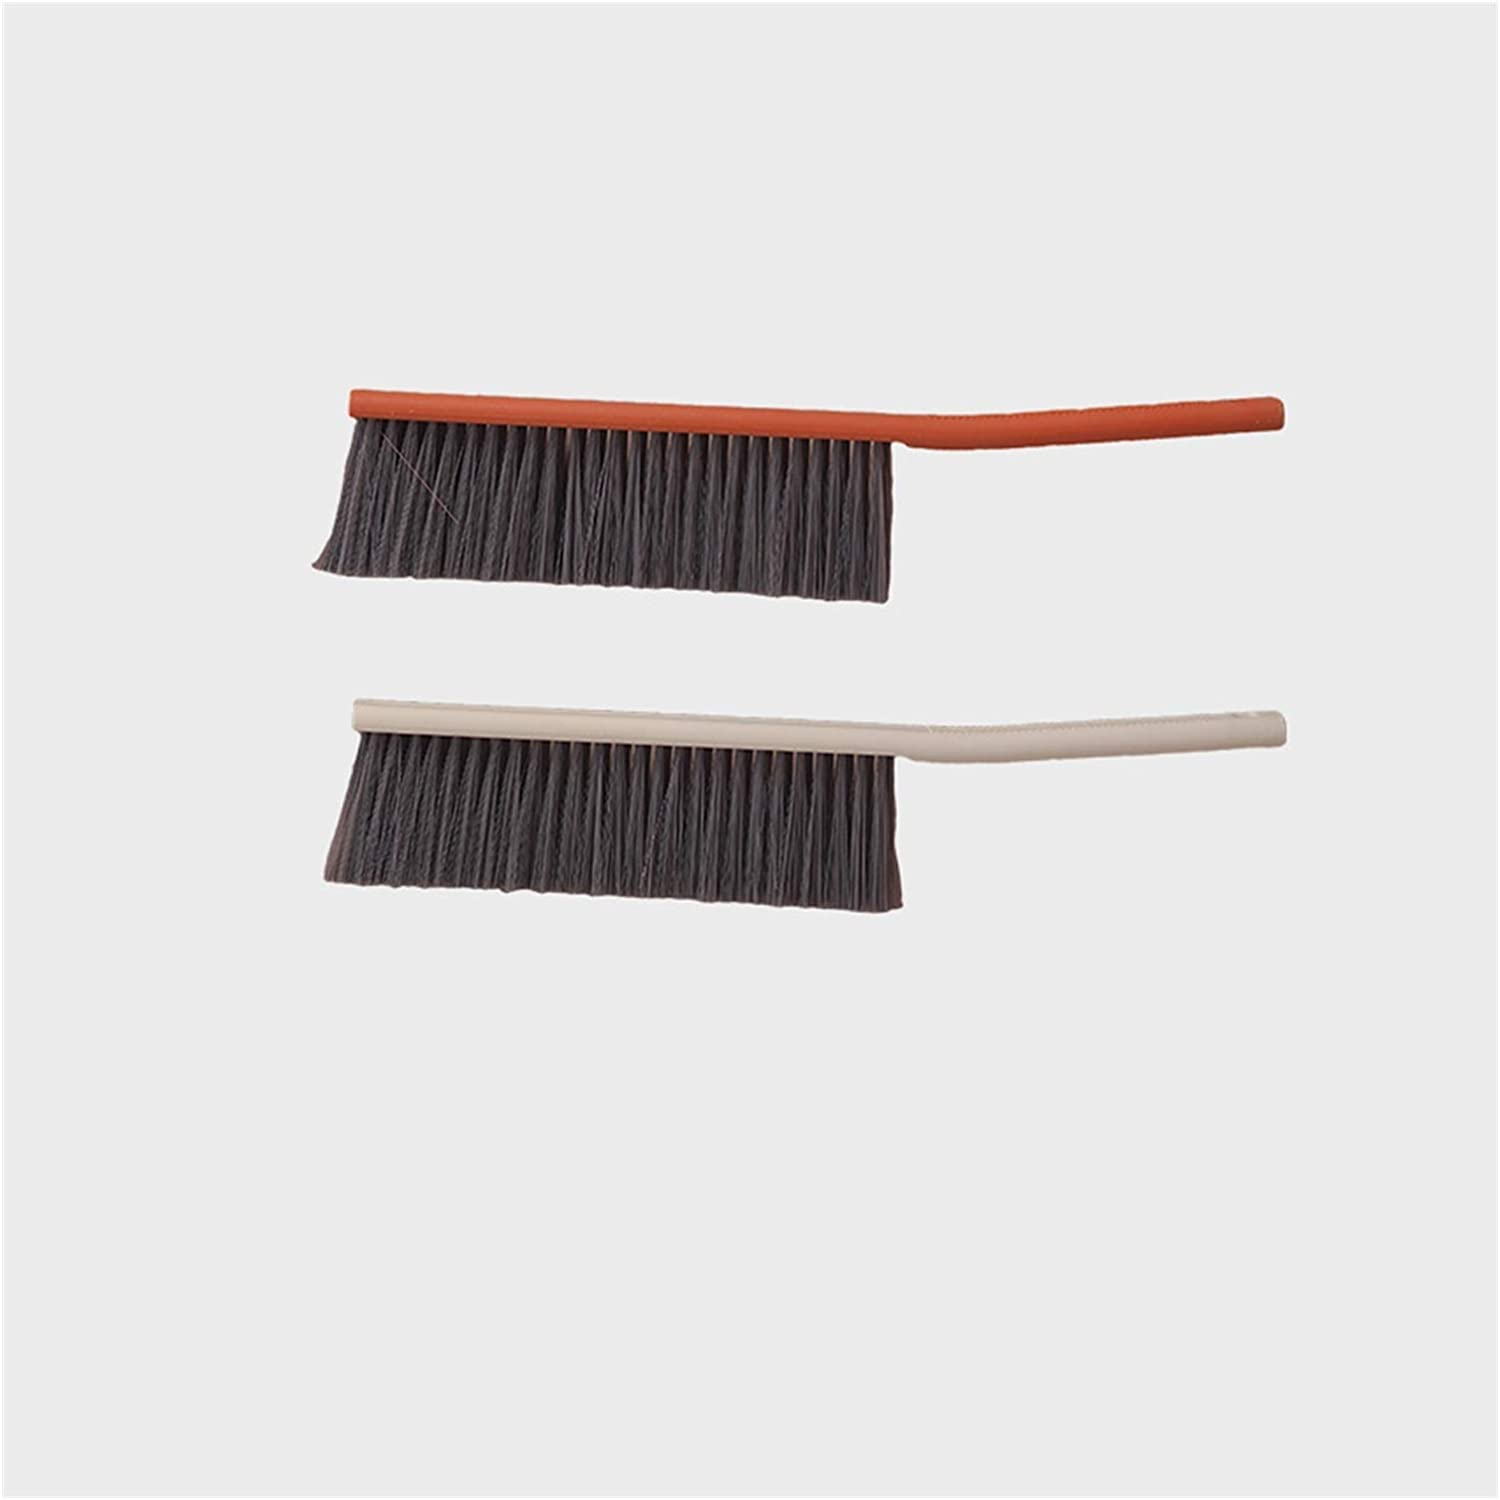 Dusters Dallas Mall Bed Brush Dust Removal Save money Hair Soft Cleaning Dr